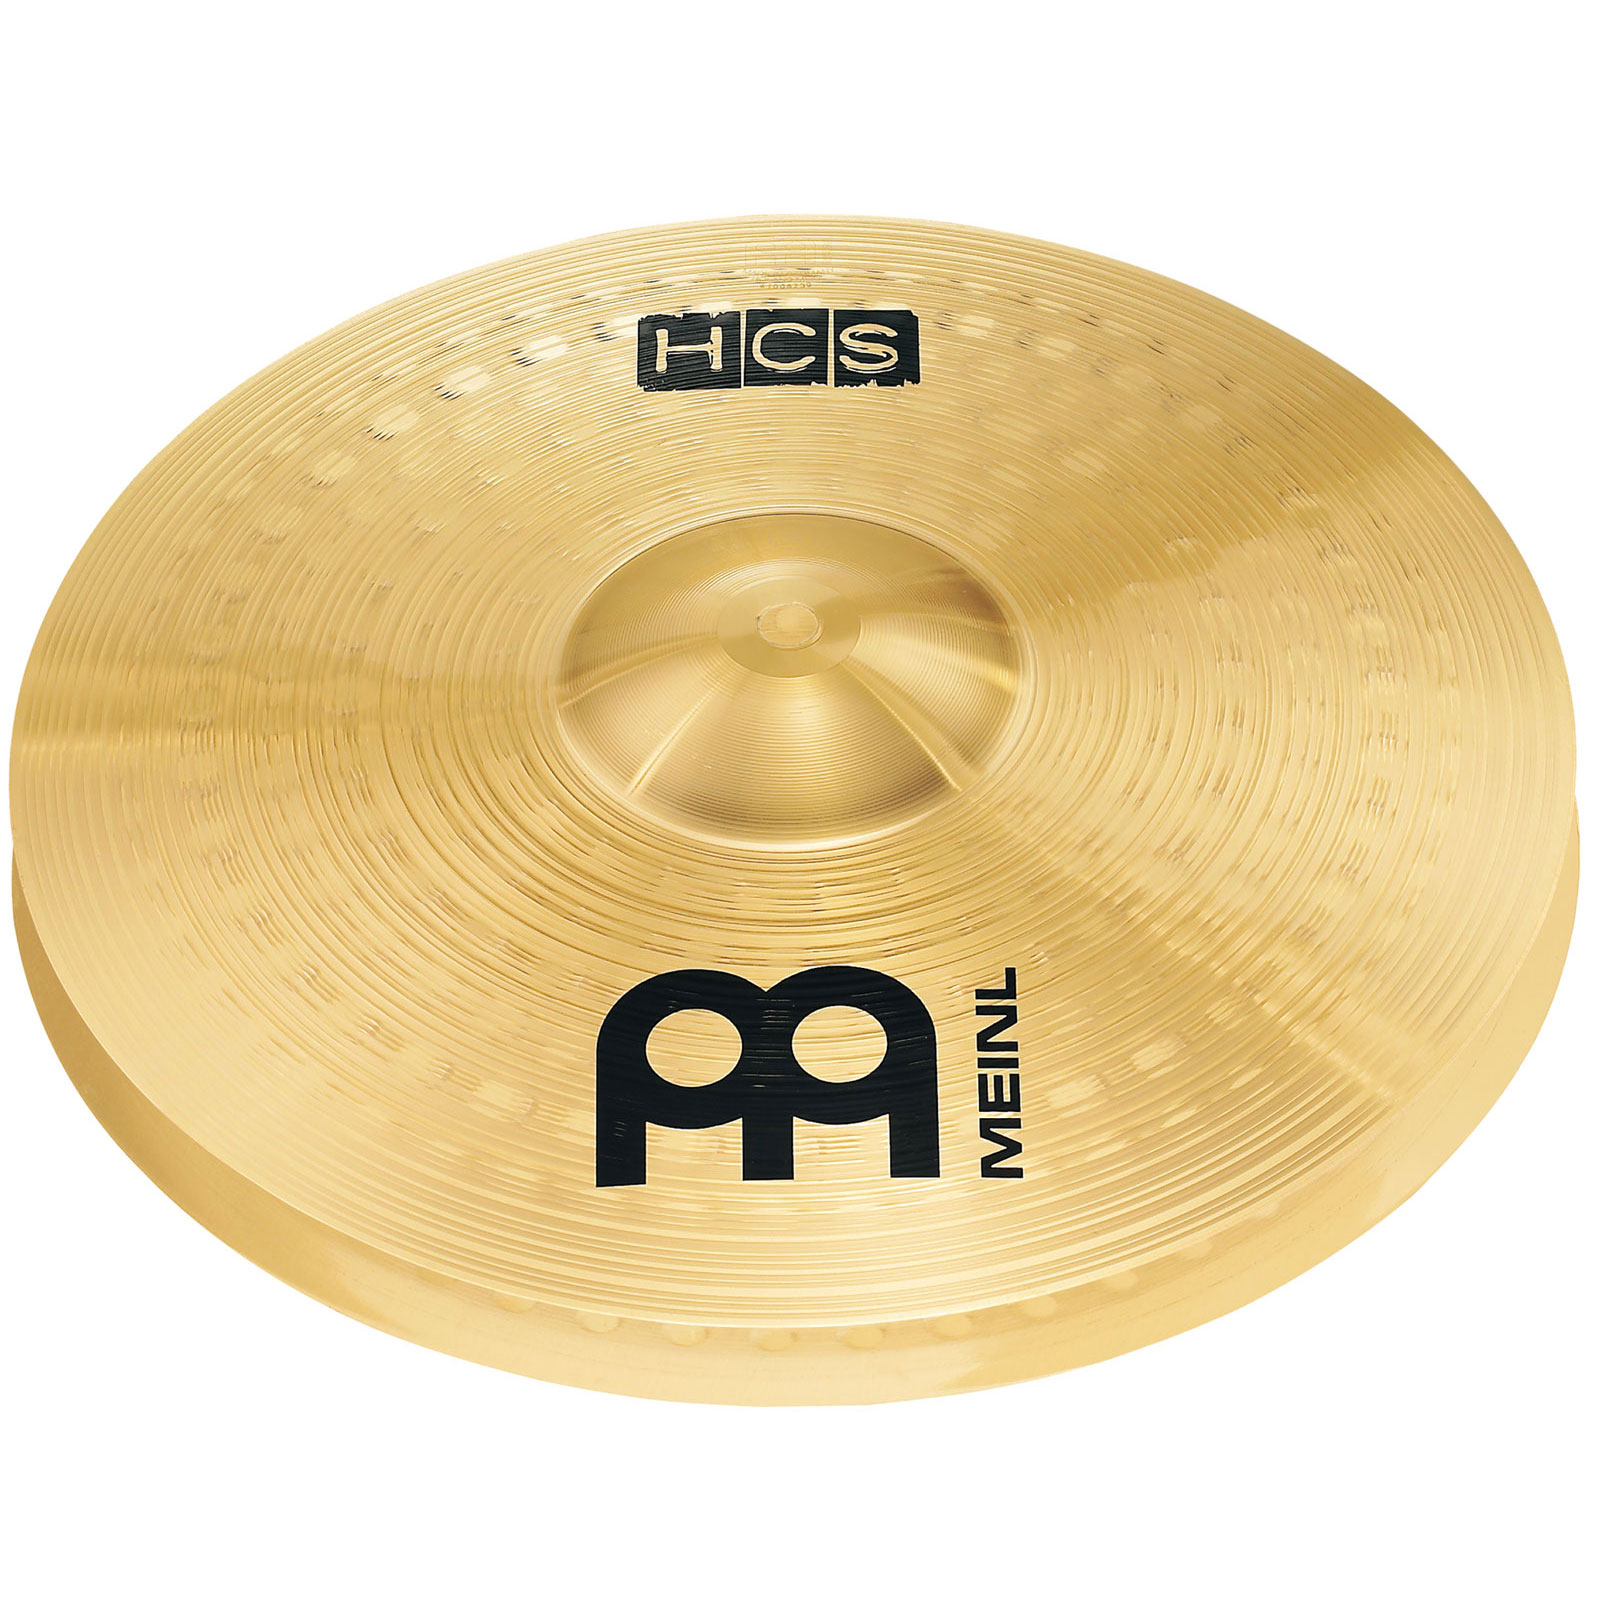 "Meinl 13"" HCS Medium Hi Hat Cymbals"